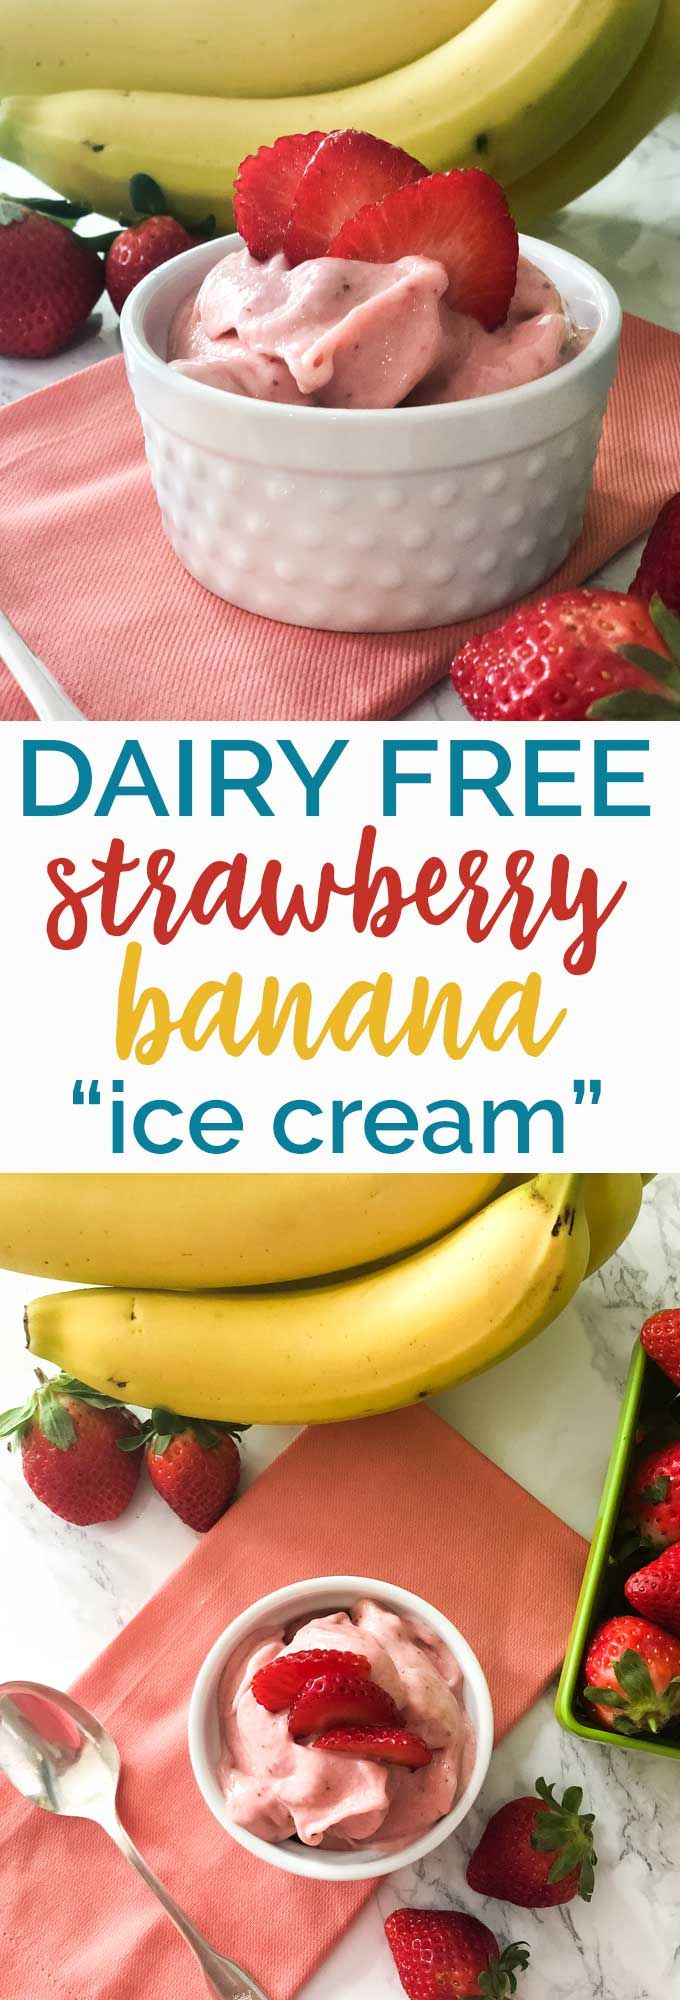 Dairy Free Strawberry Banana Ice Cream #dairyfreesmoothie